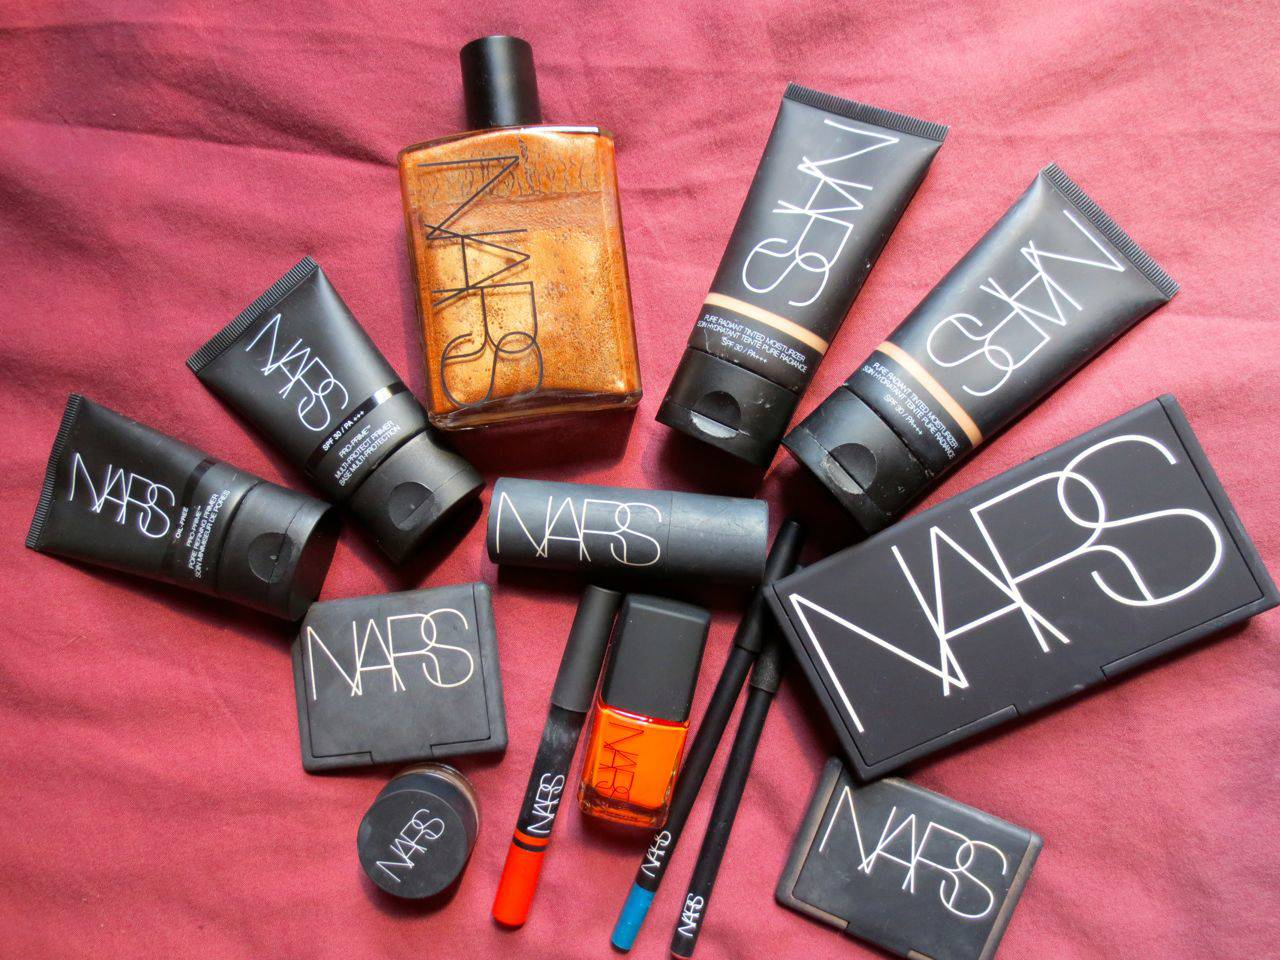 it's a nars party